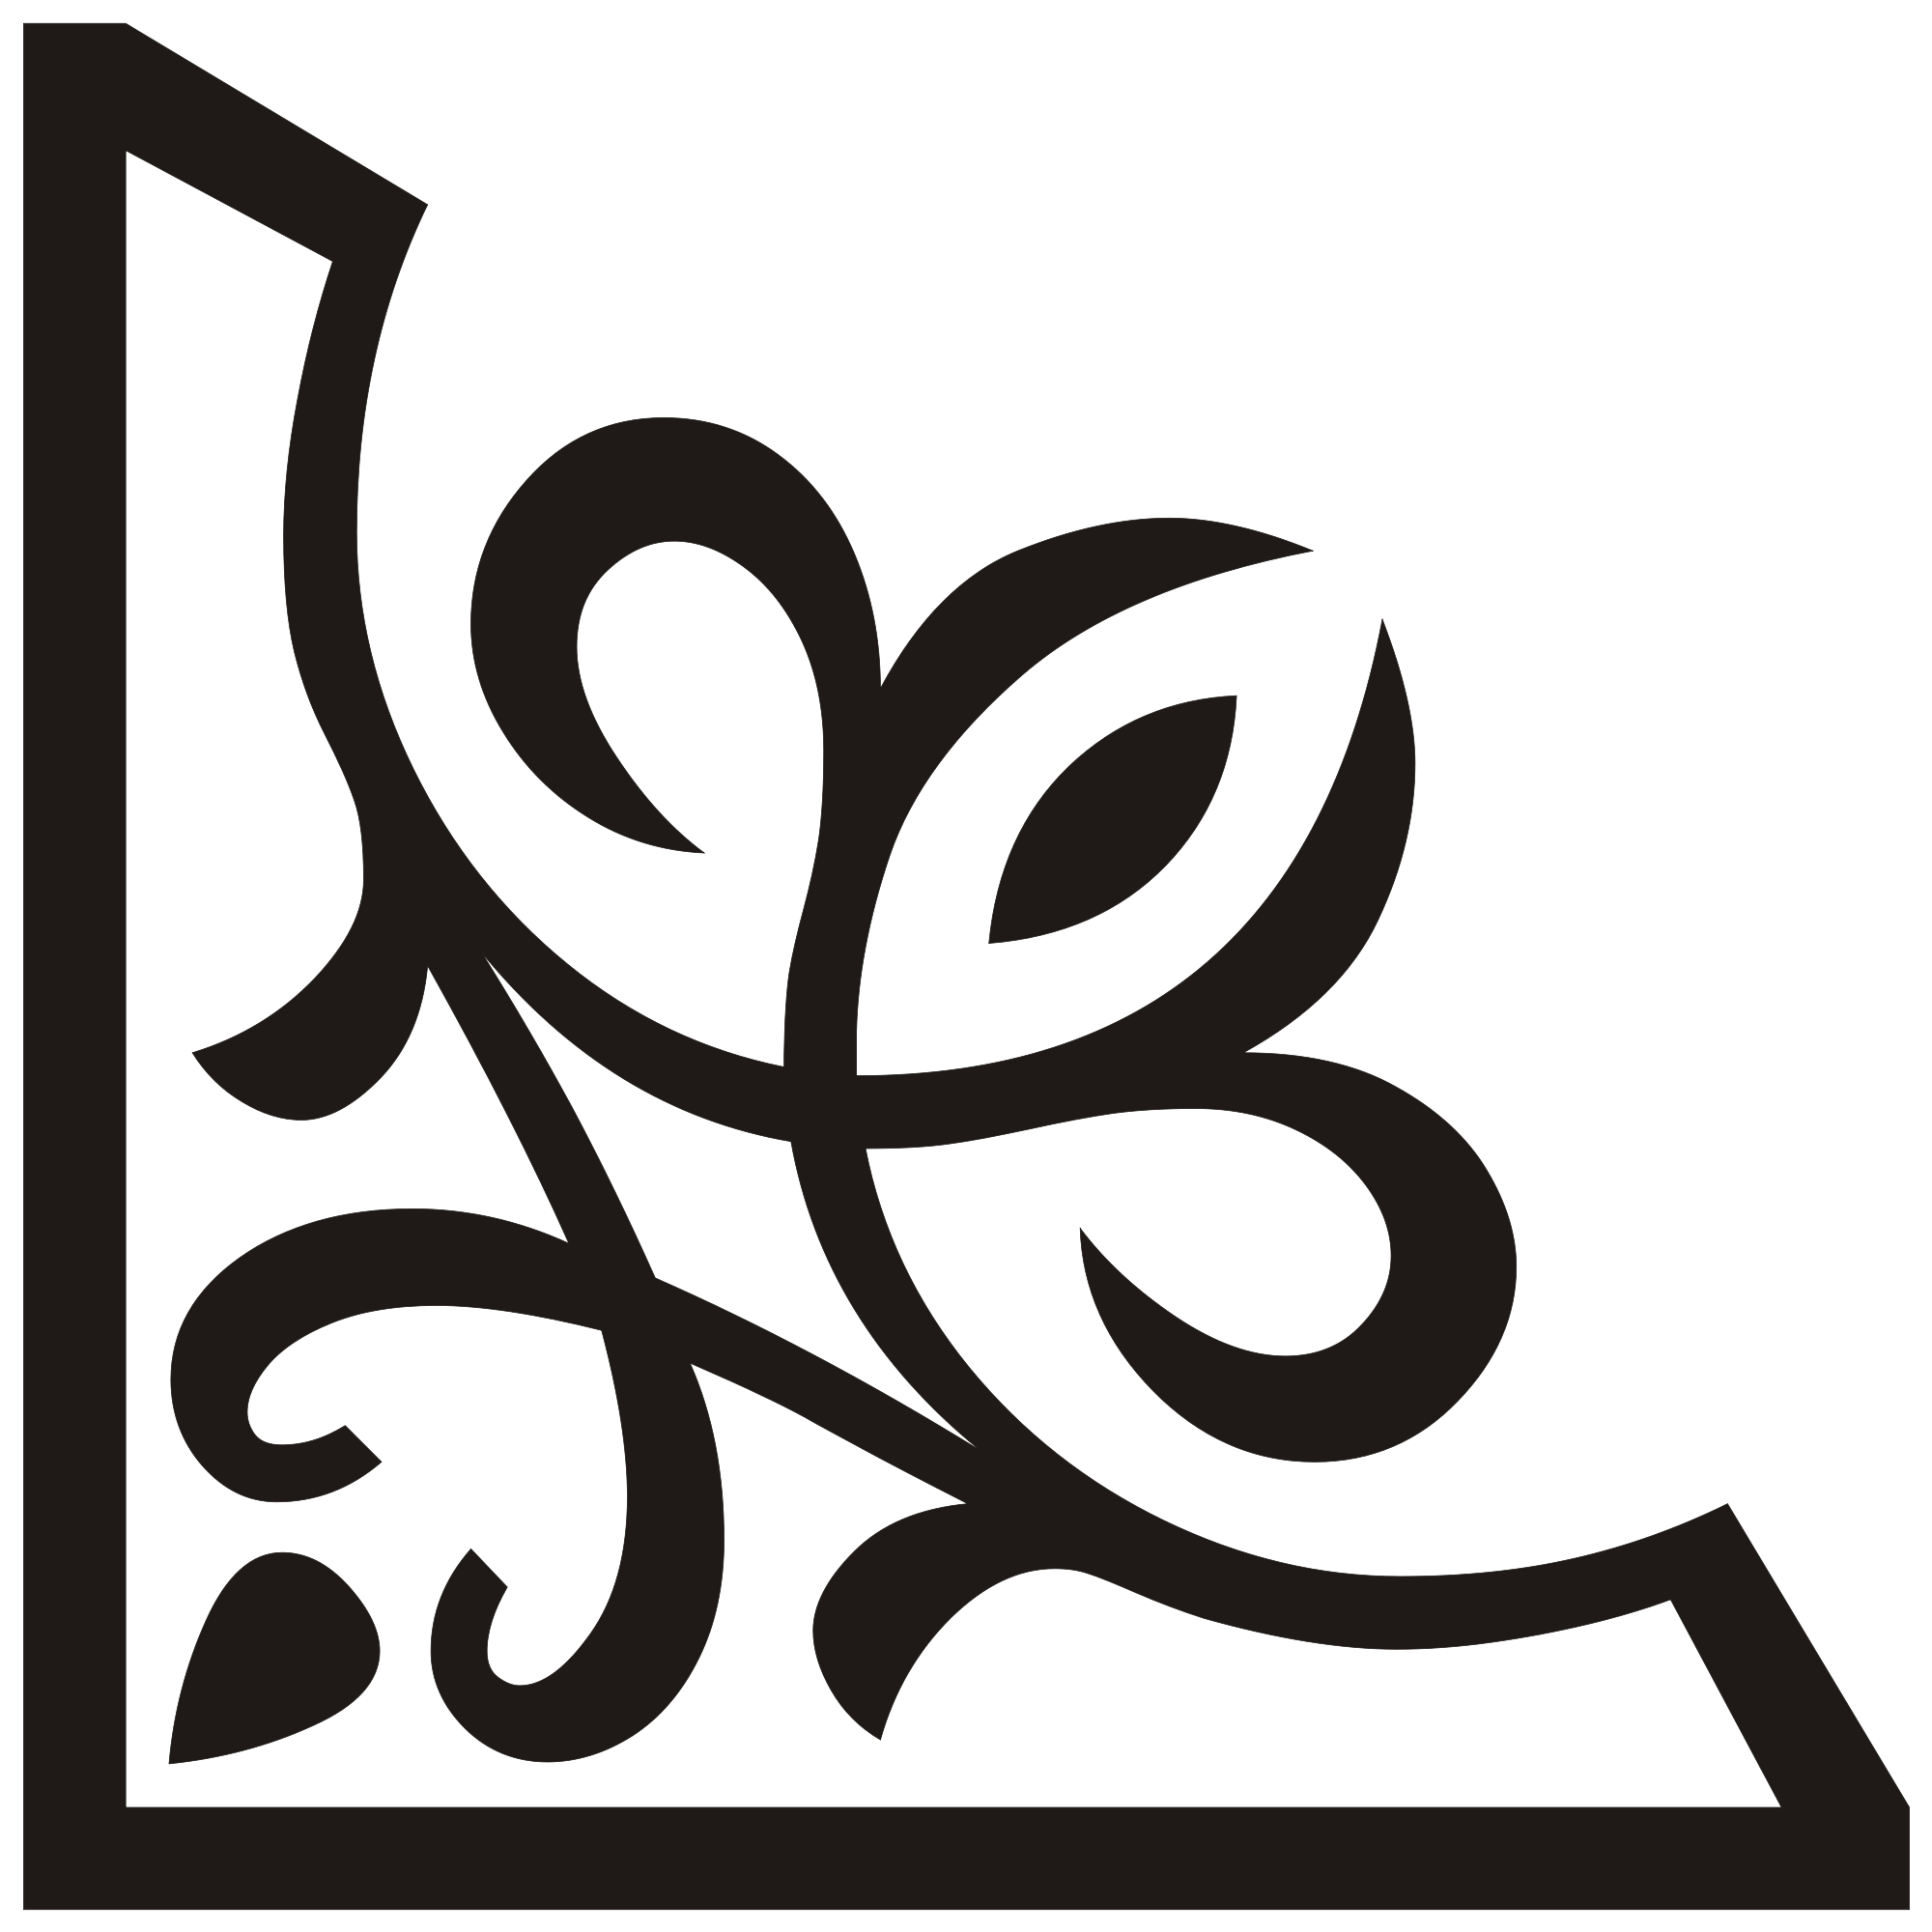 Ornament png. Free photo layer tattoo